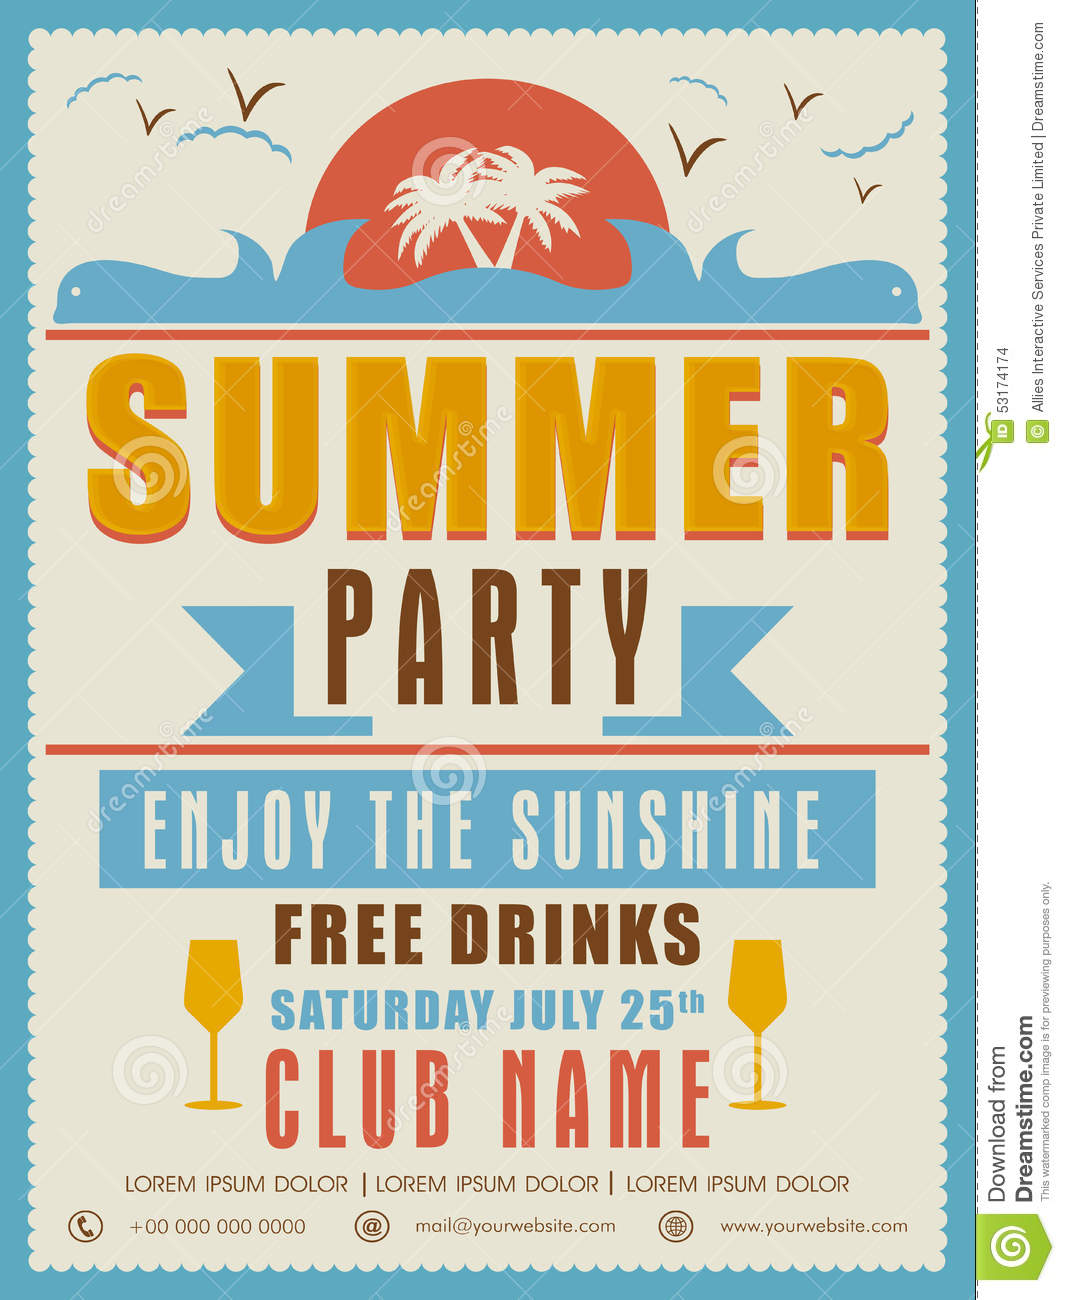 Invitation Card Design For Summer Party Photo Image 53174174 – Party Invitation Card Design